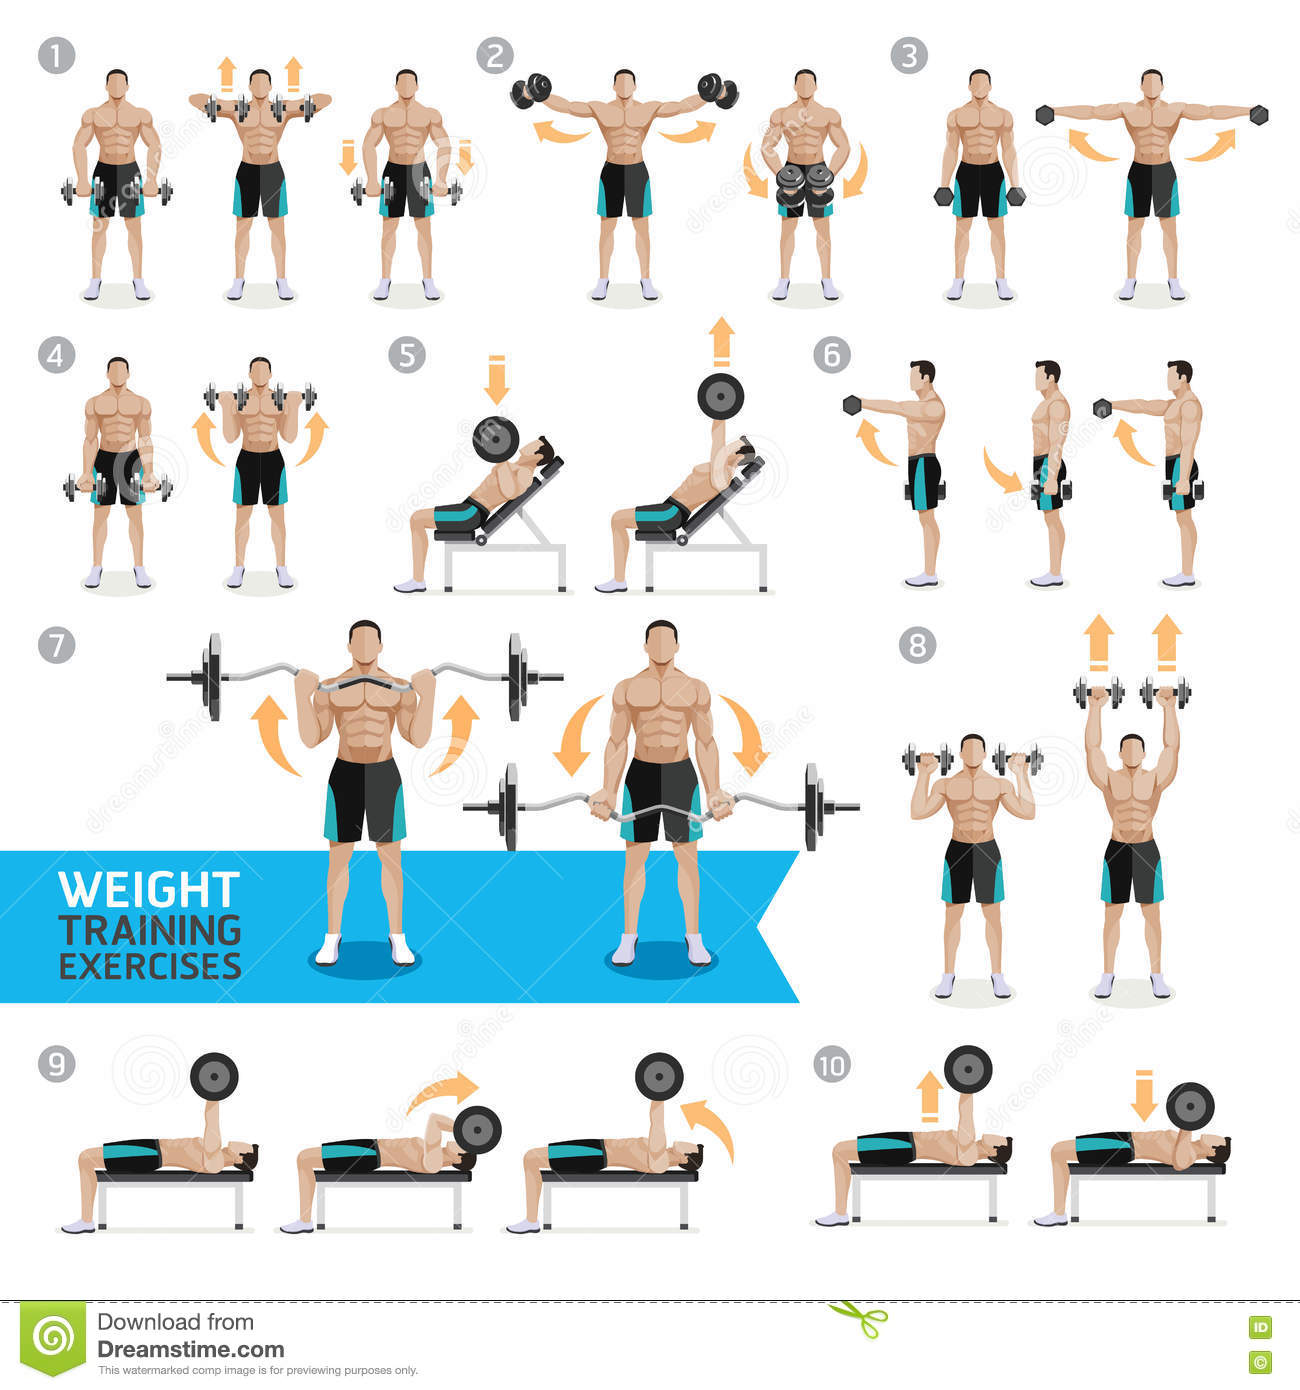 Dumbbell Exercises And Workouts Weight Training Stock